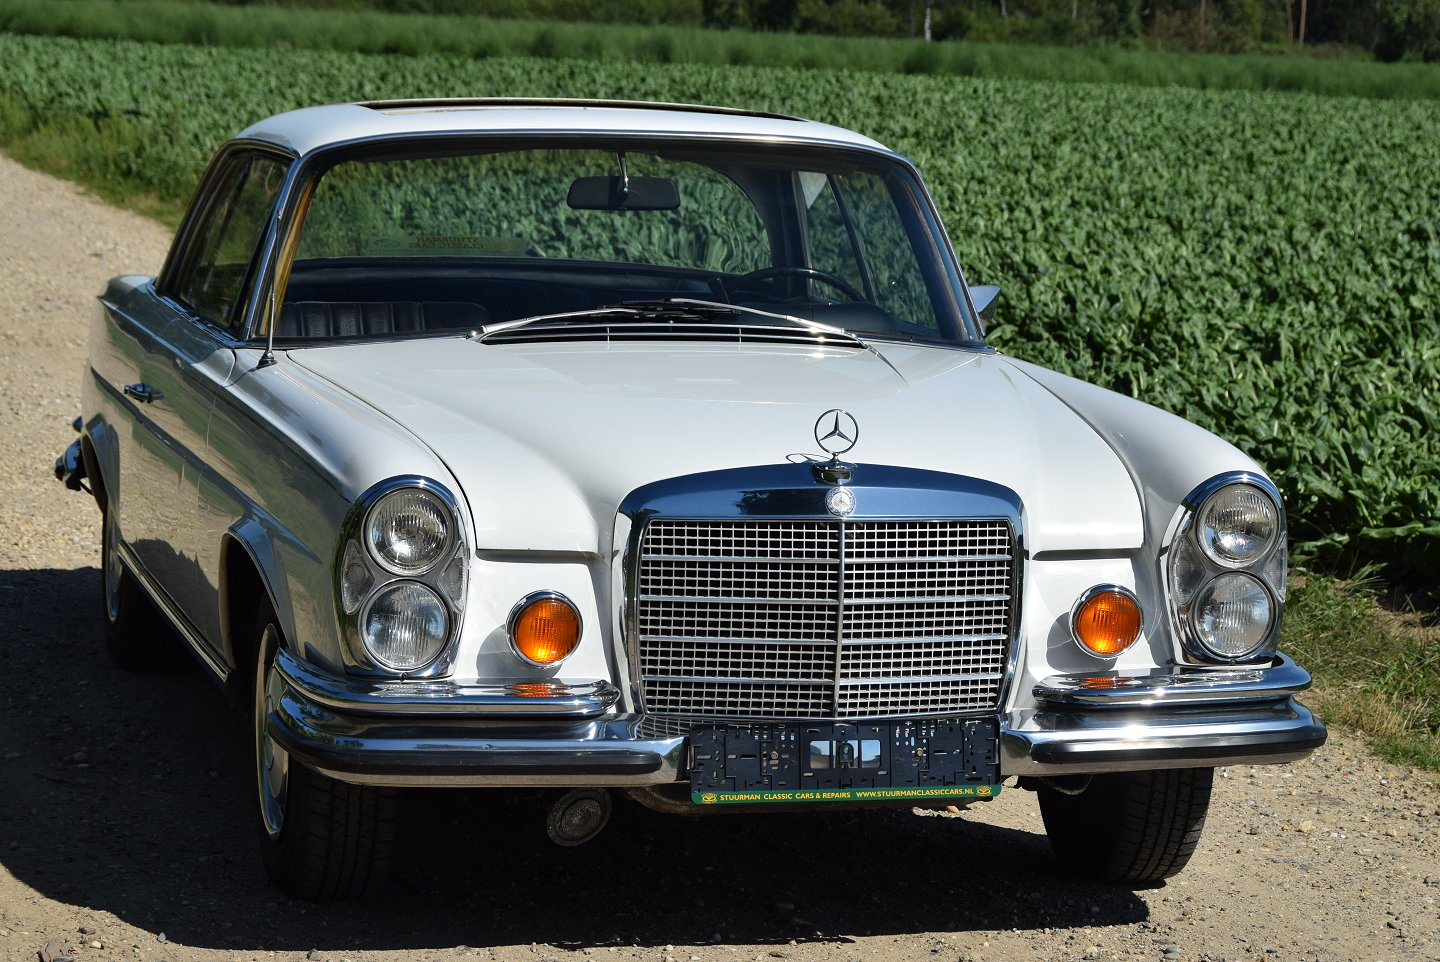 Arrives in the netherlands an original classic lowgrill mercedes coupe and a real collectorsitem so just drive it or collect it you cannot go wrong